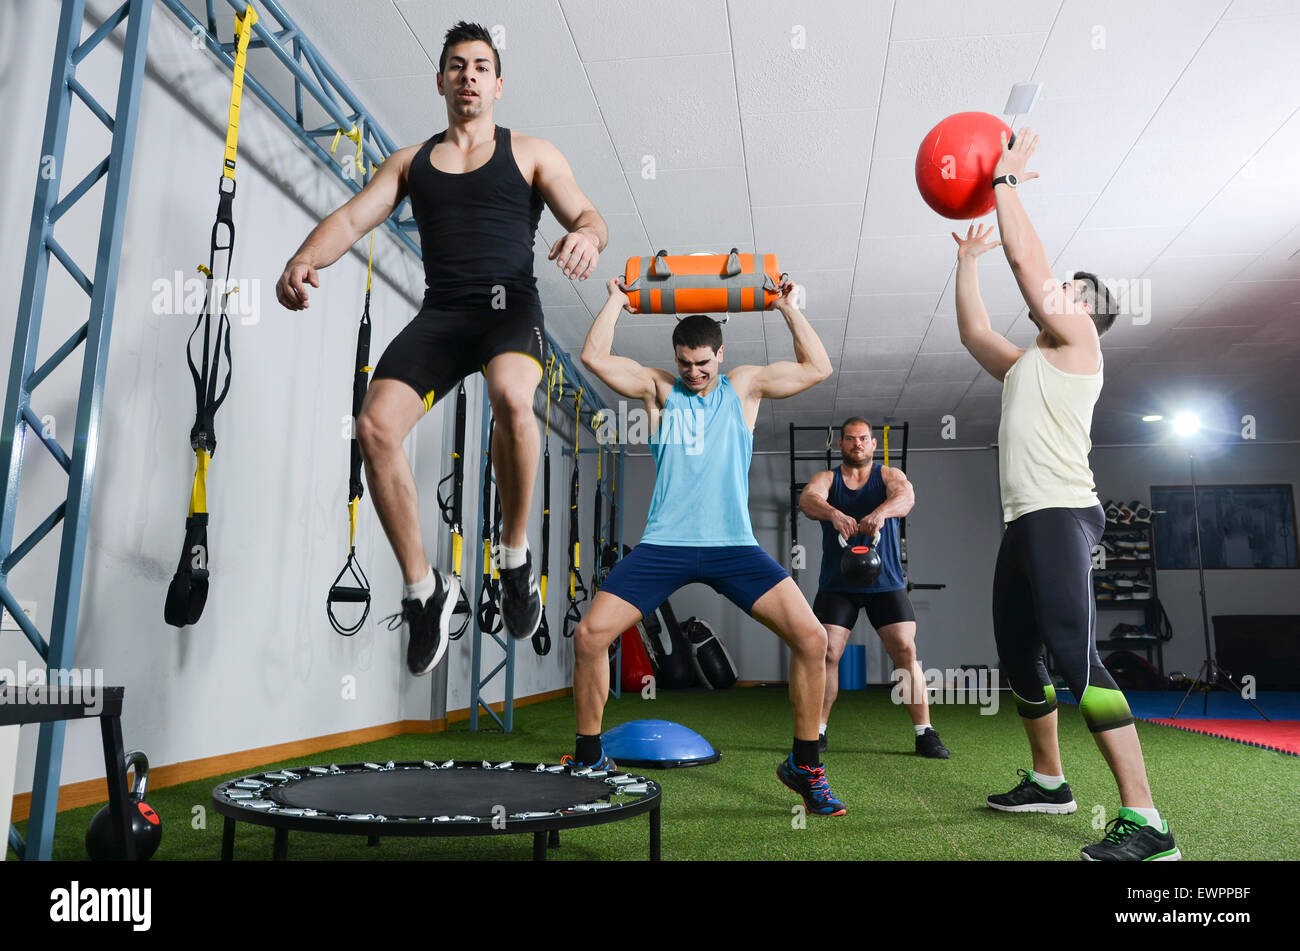 L'équipe de Crossfit en action la formation at gym Photo Stock